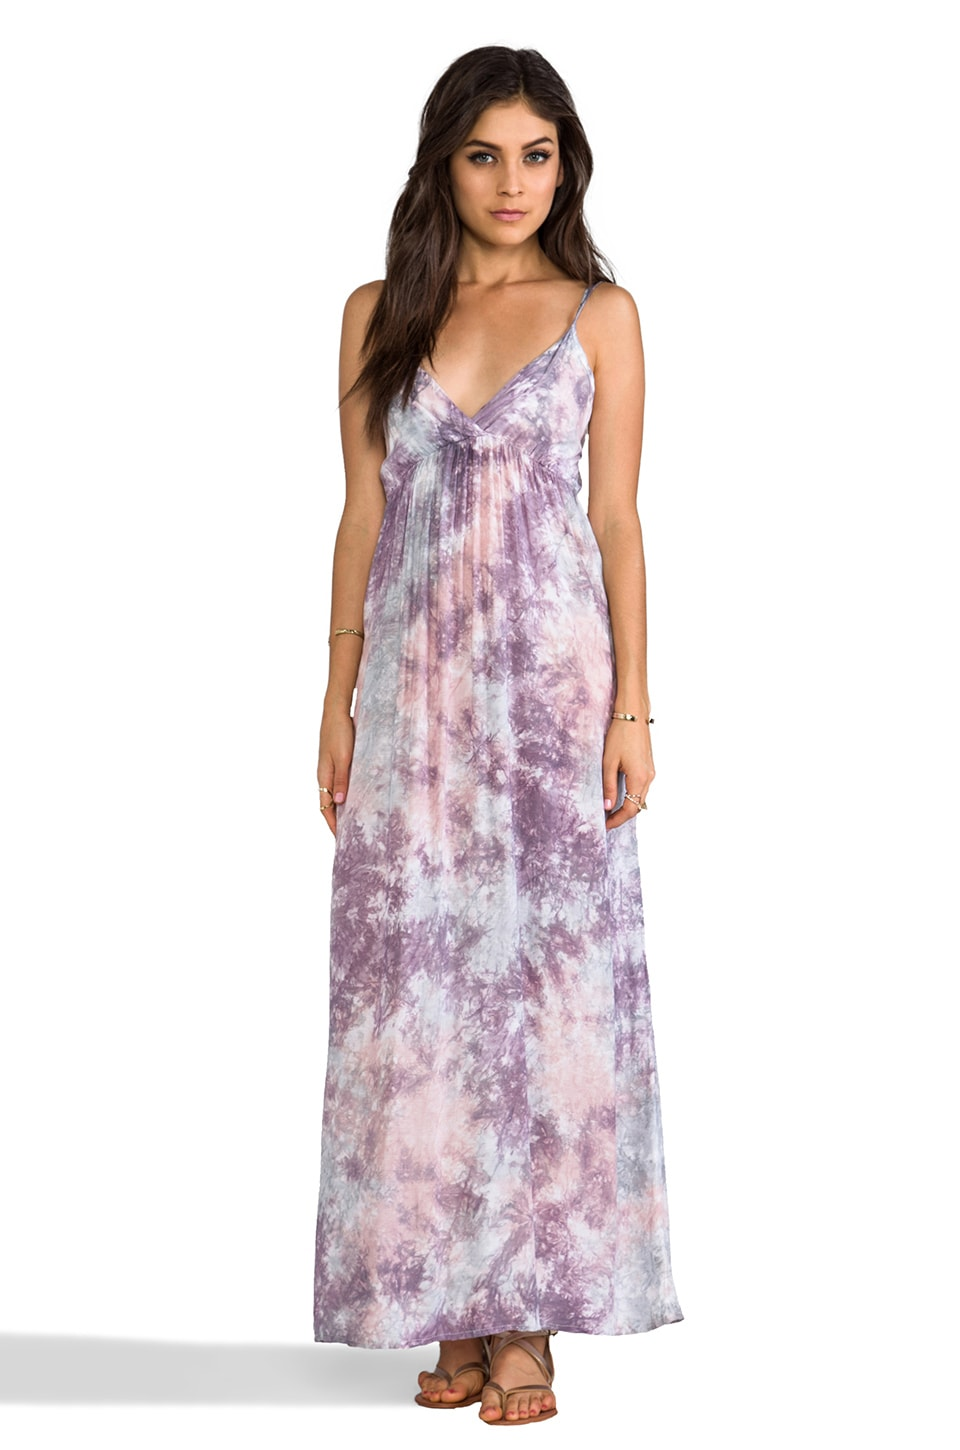 Tiare Hawaii Gacie Maxi Dress in Mauve Grey Smoke